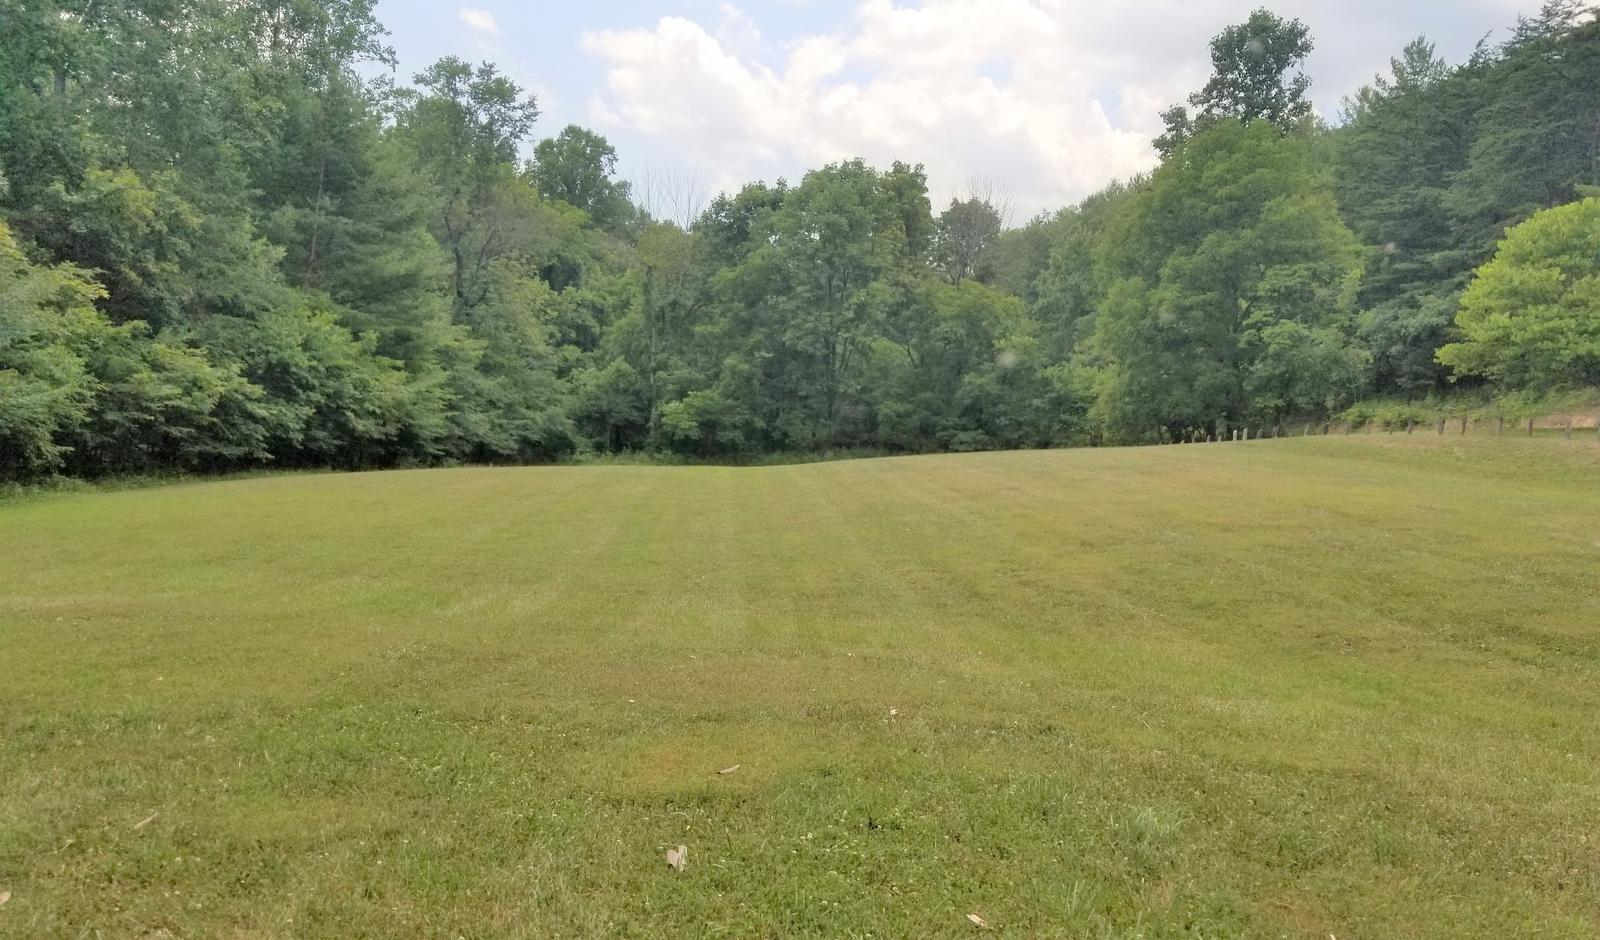 Caldwell Fields Group Campground